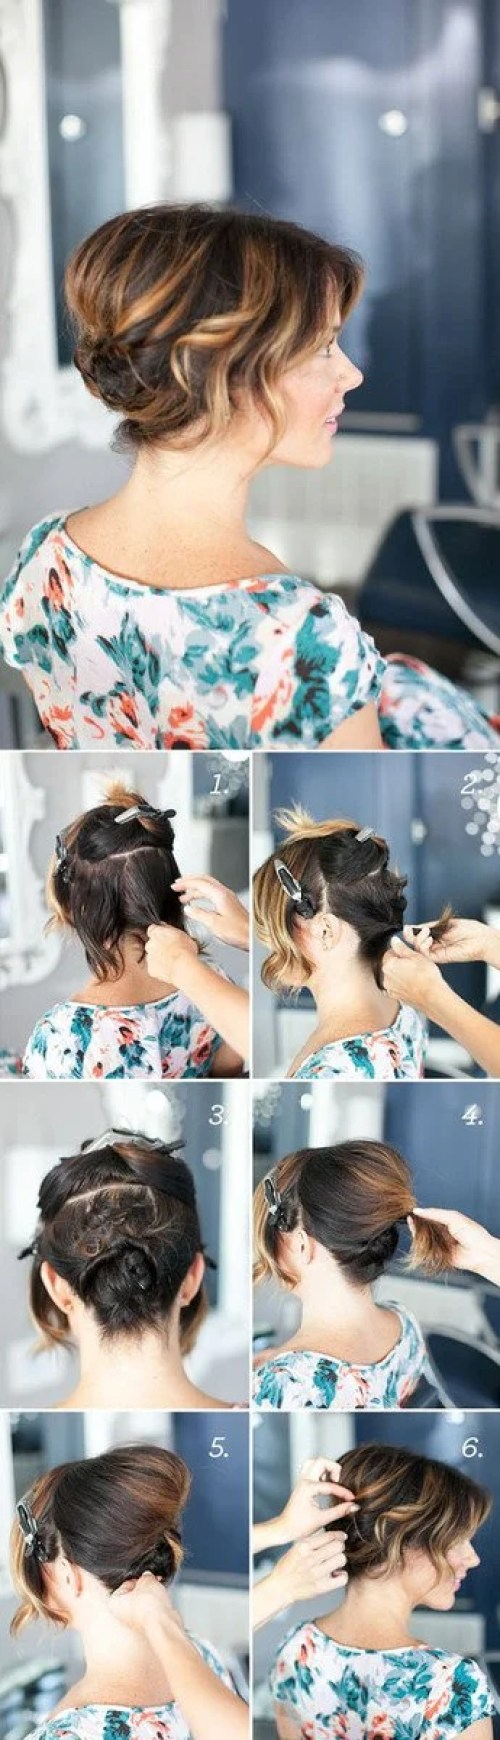 15 gorgeous wedding hairstyles for short hair